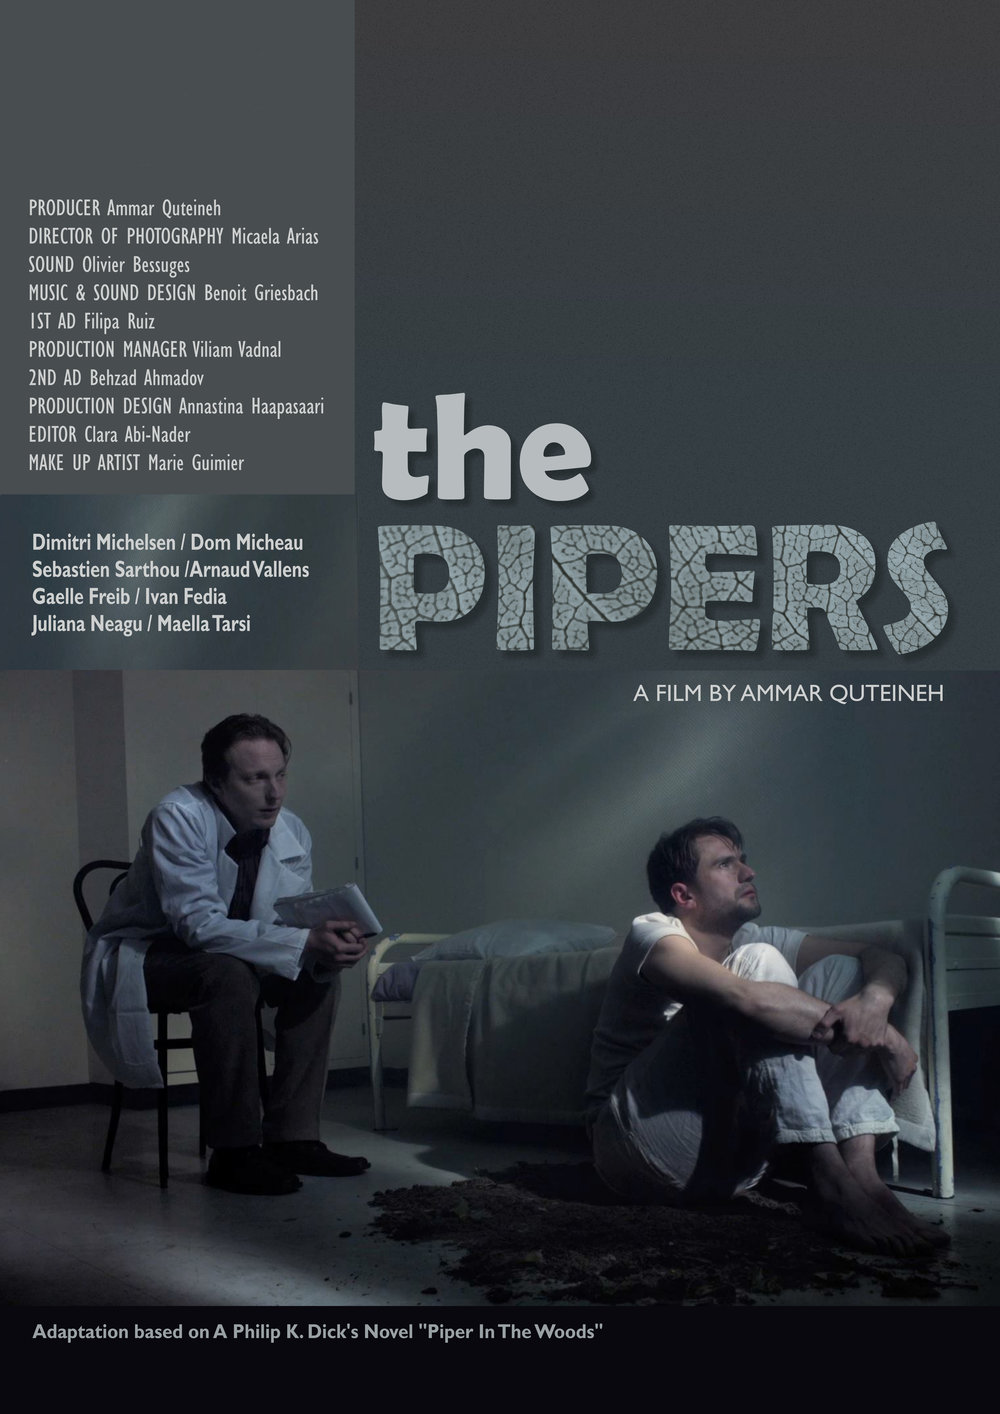 Ammar Quteineh - The Pipers - Poster.jpg